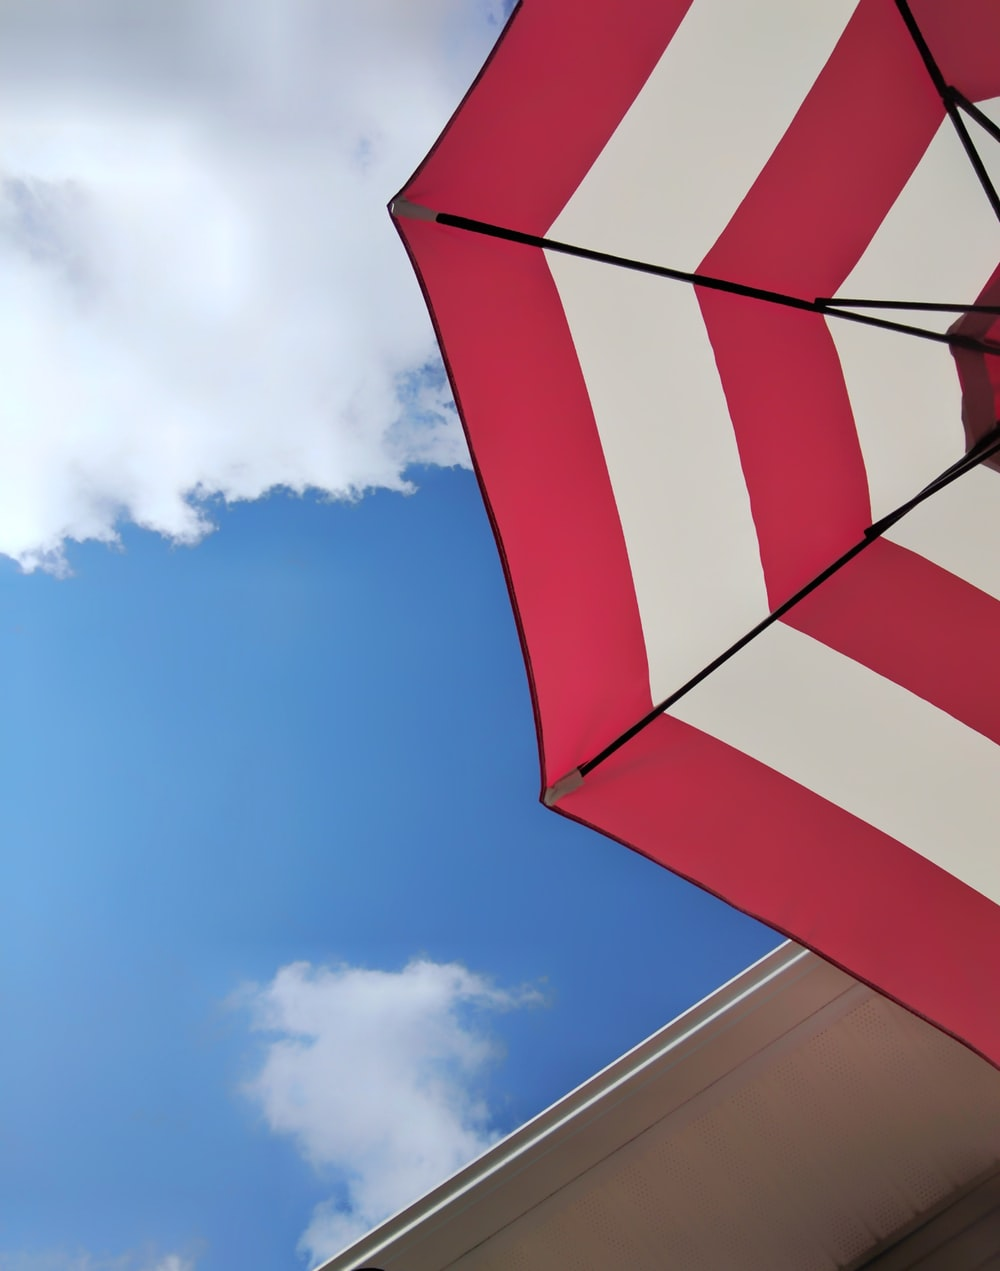 low angle photography of red and white umbrella